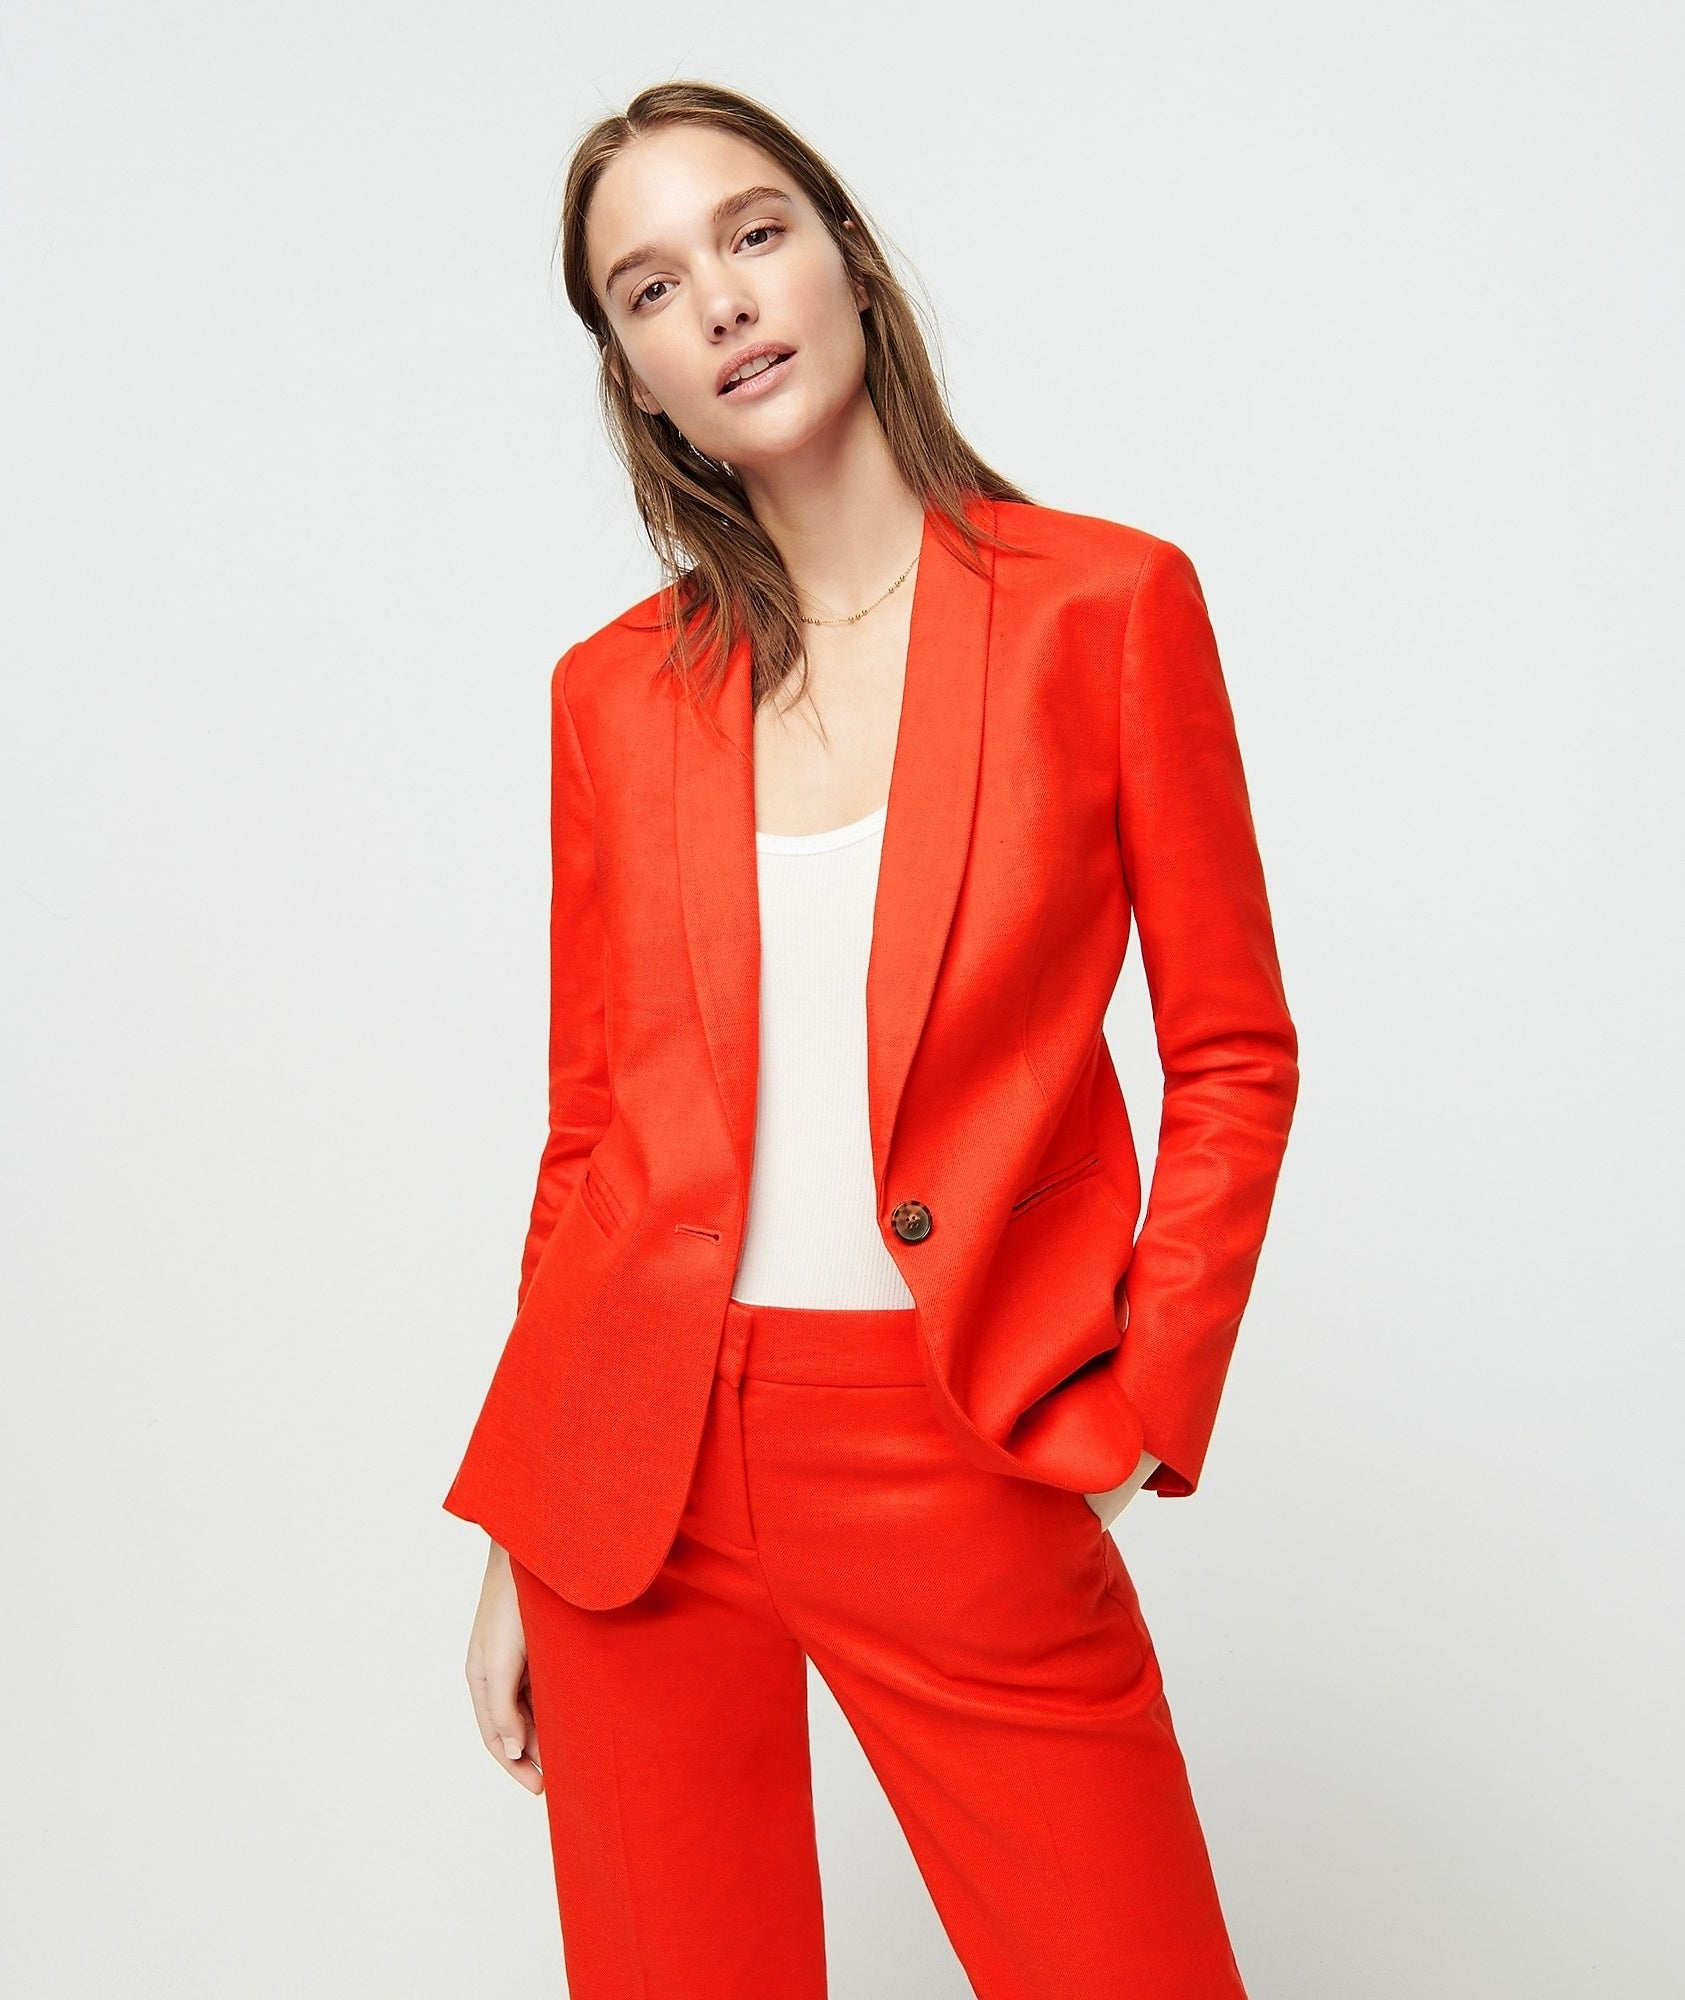 model in bright red single button blazer with matching pants